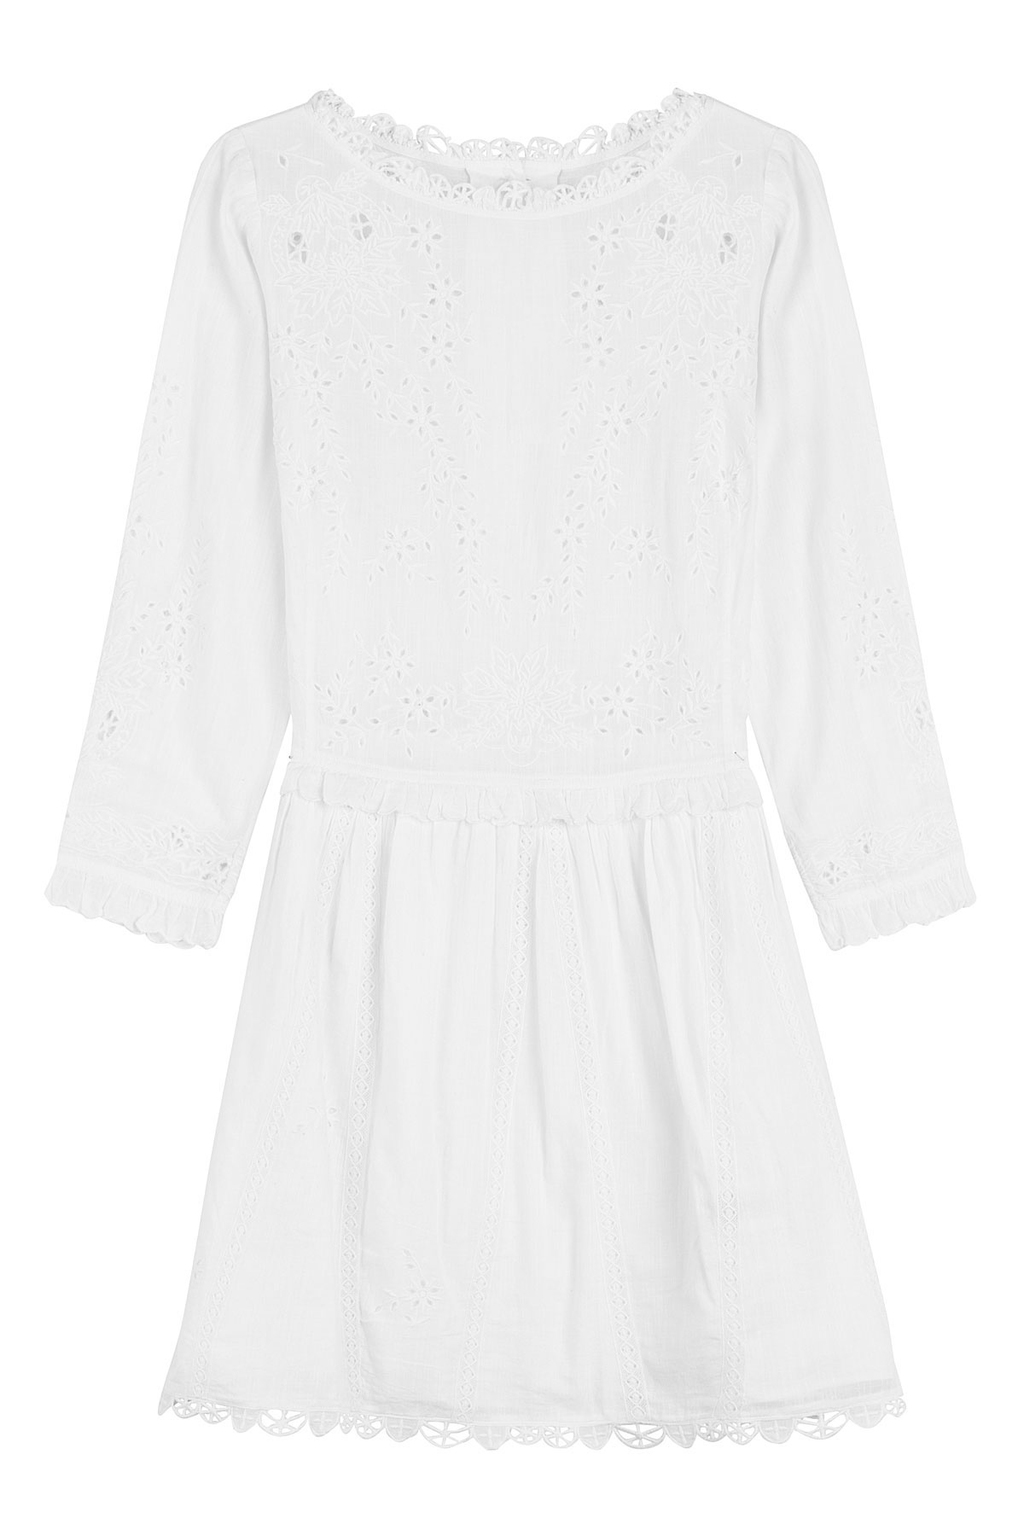 Cotton Dress With Embroidery White - style: shift; length: mid thigh; pattern: plain; neckline: high neck; predominant colour: white; occasions: casual, creative work; fit: soft a-line; fibres: cotton - 100%; sleeve length: 3/4 length; sleeve style: standard; pattern type: fabric; embellishment: embroidered; texture group: broiderie anglais; season: s/s 2016; wardrobe: highlight